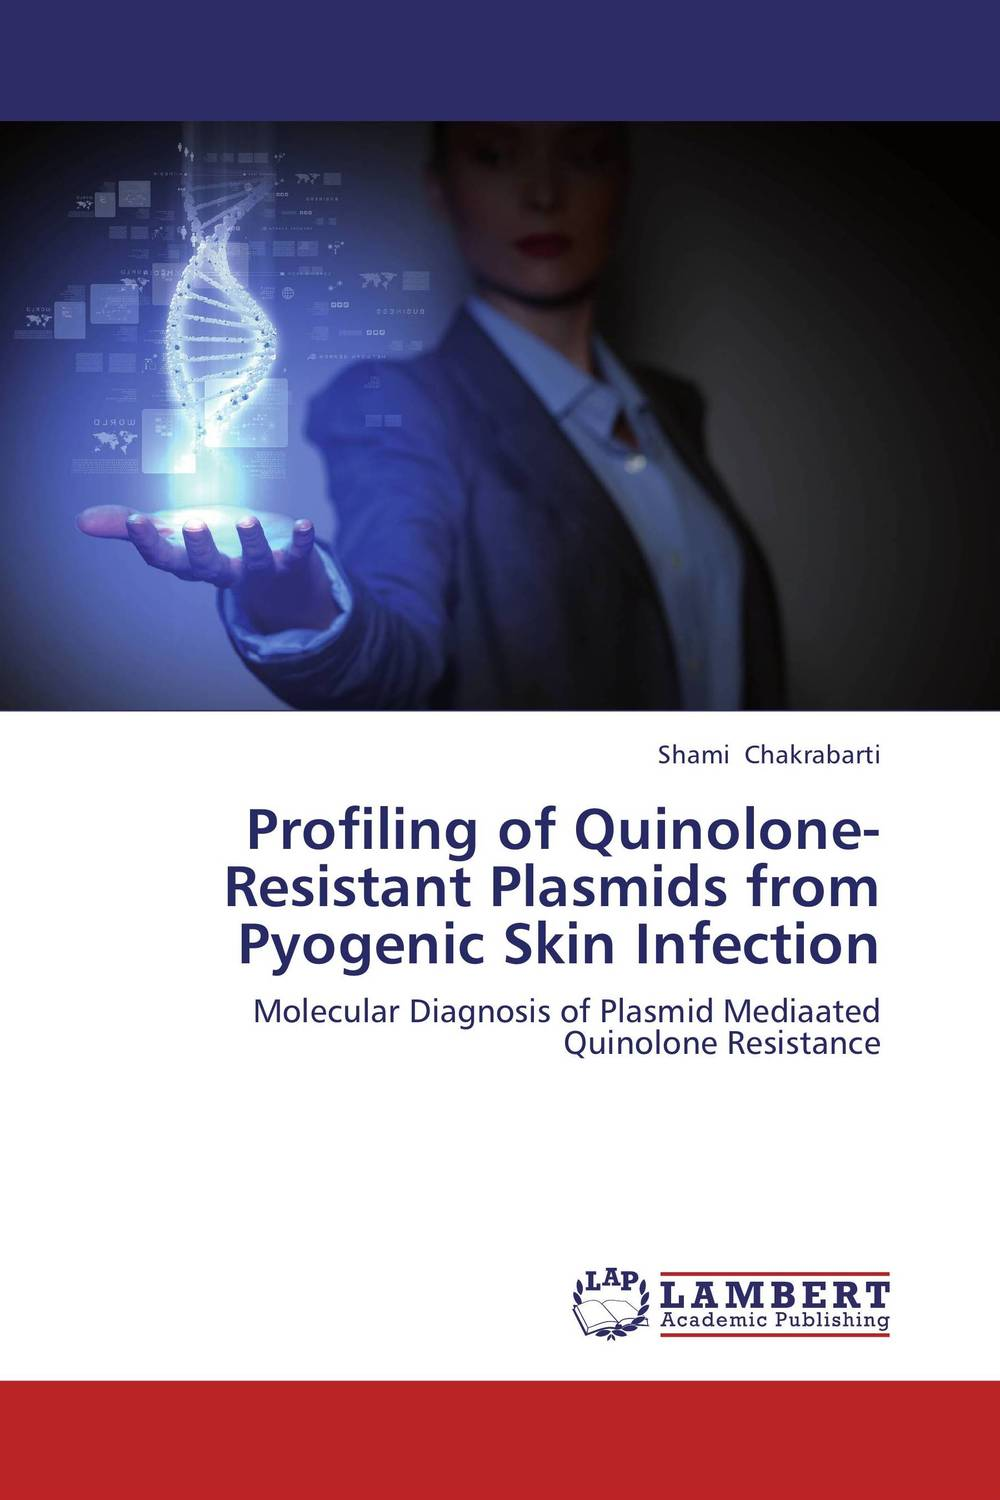 Profiling of Quinolone-Resistant Plasmids from Pyogenic Skin Infection